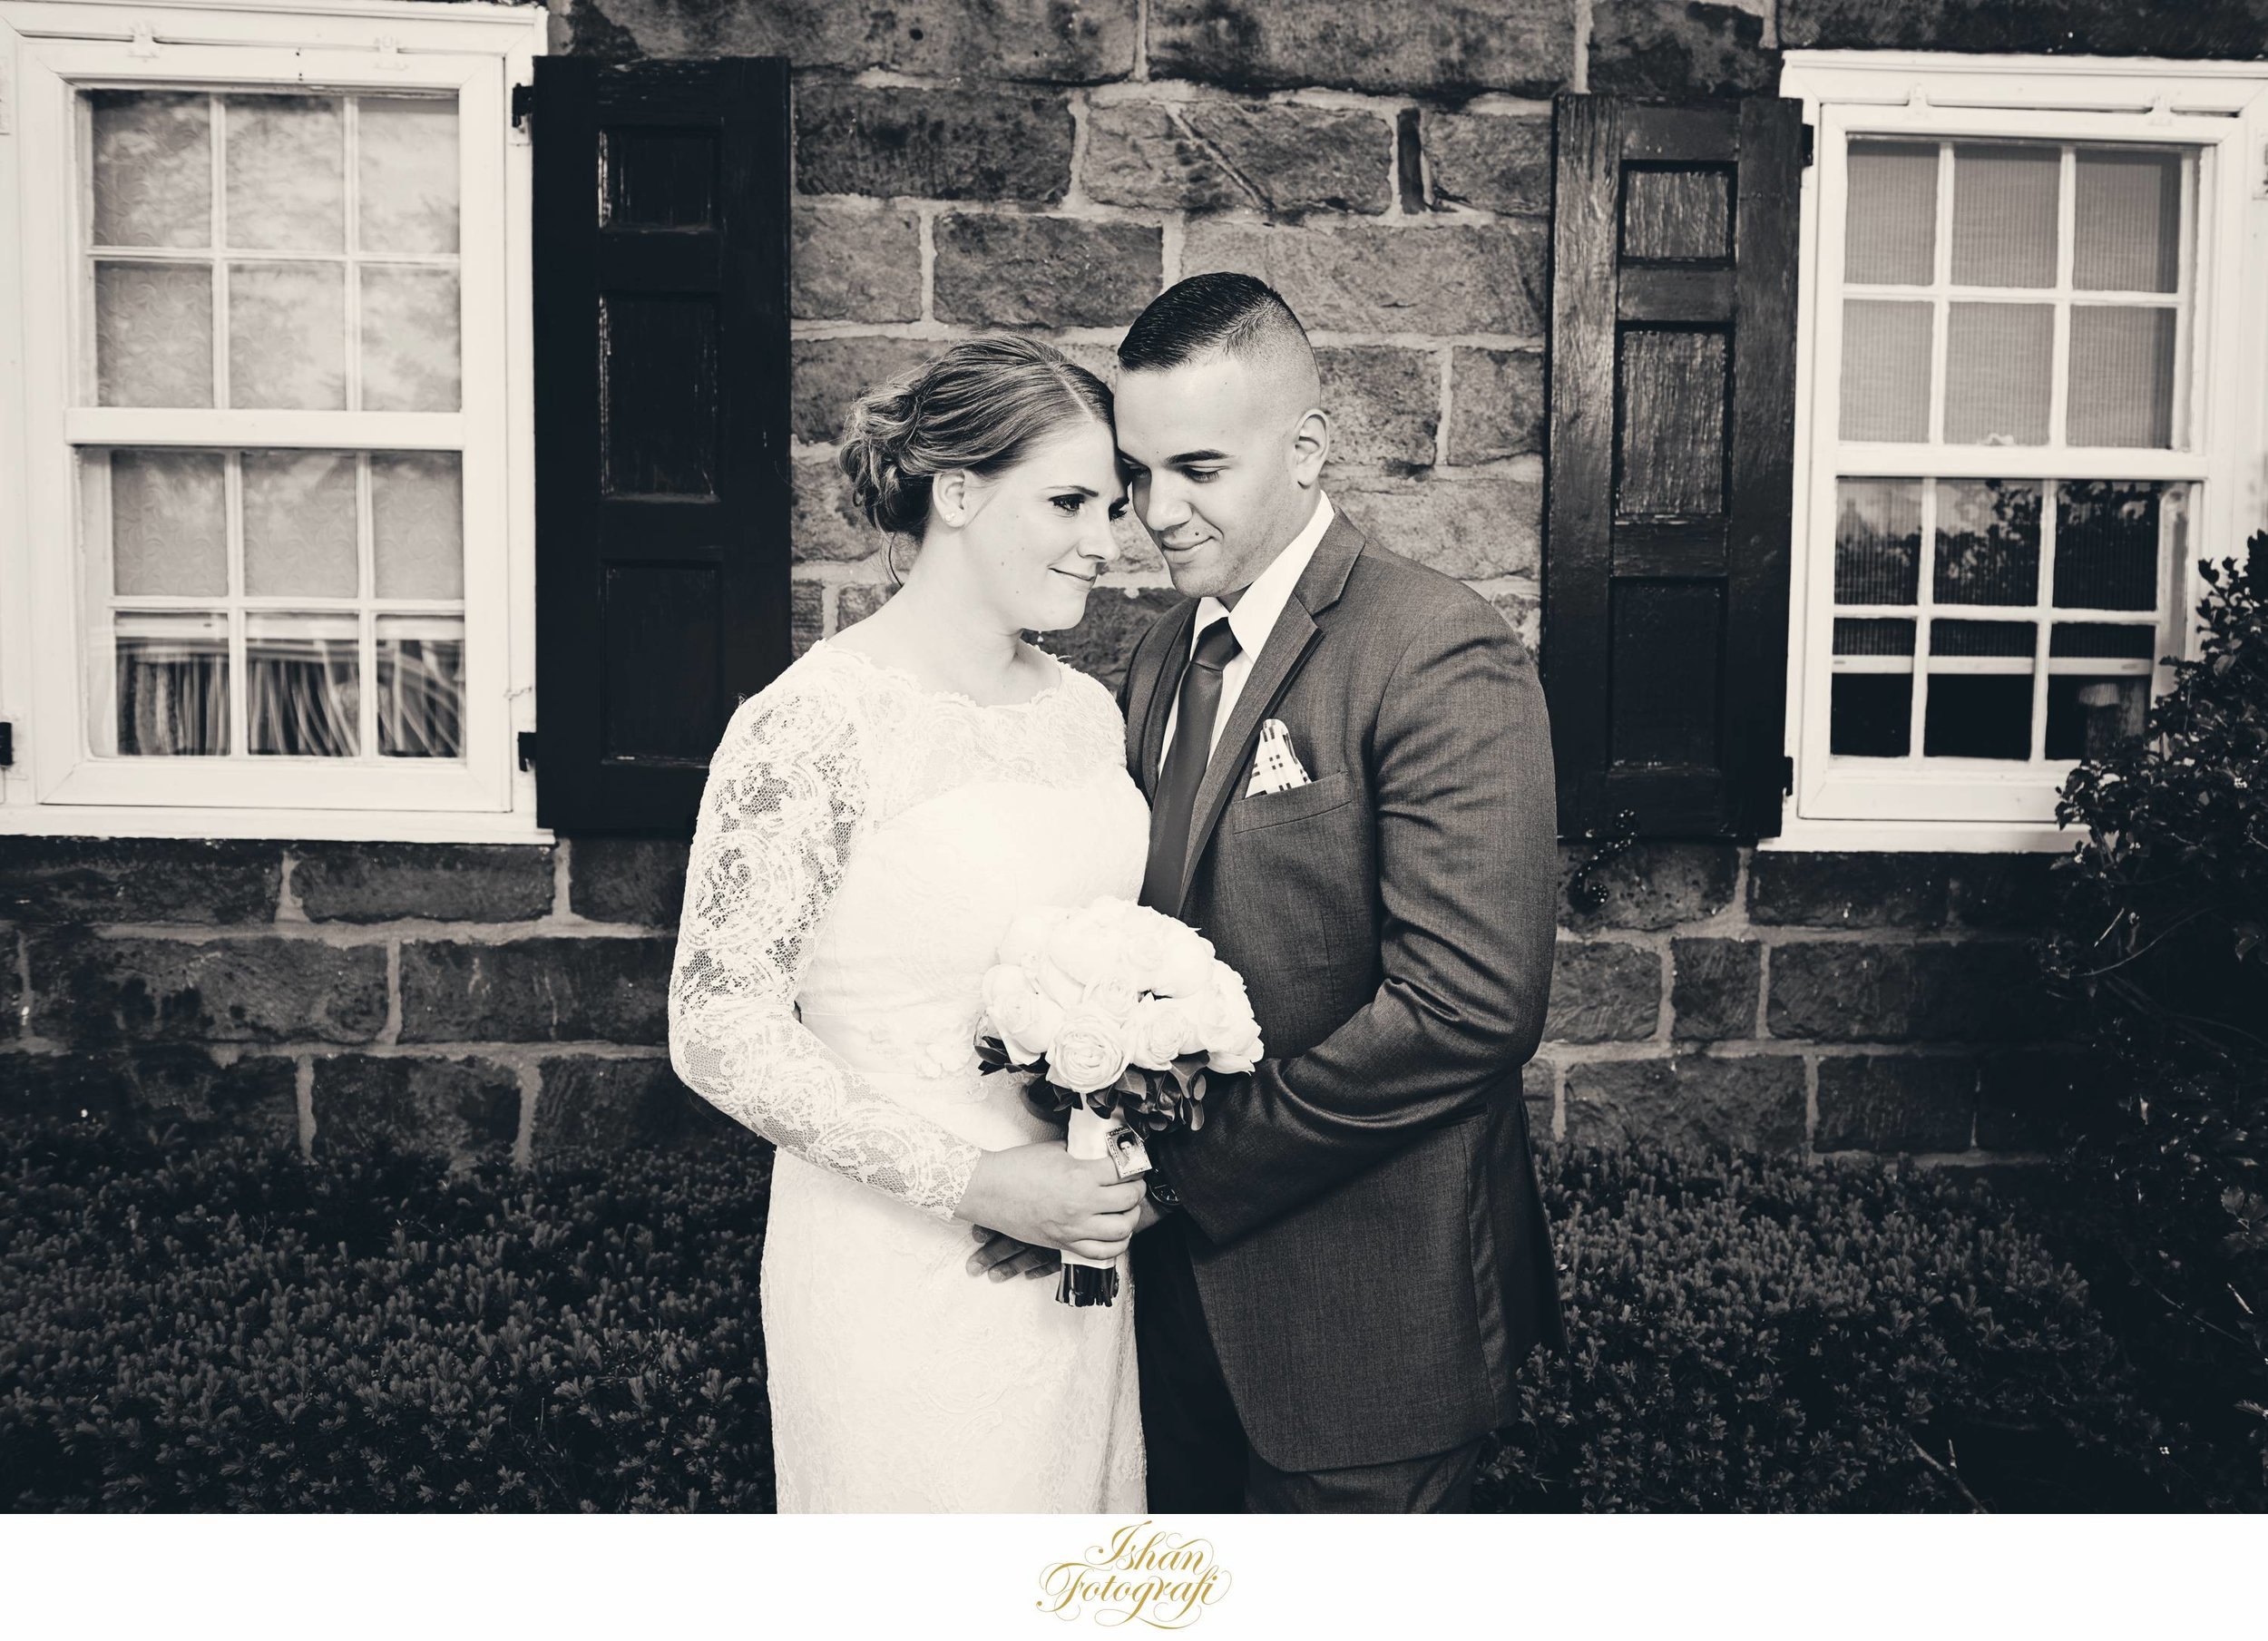 They compliment each other just so wonderfully. Stony Hill Inn has a really nice brick wall which we wanted to use to make a stunning portrait of our bride and groom.